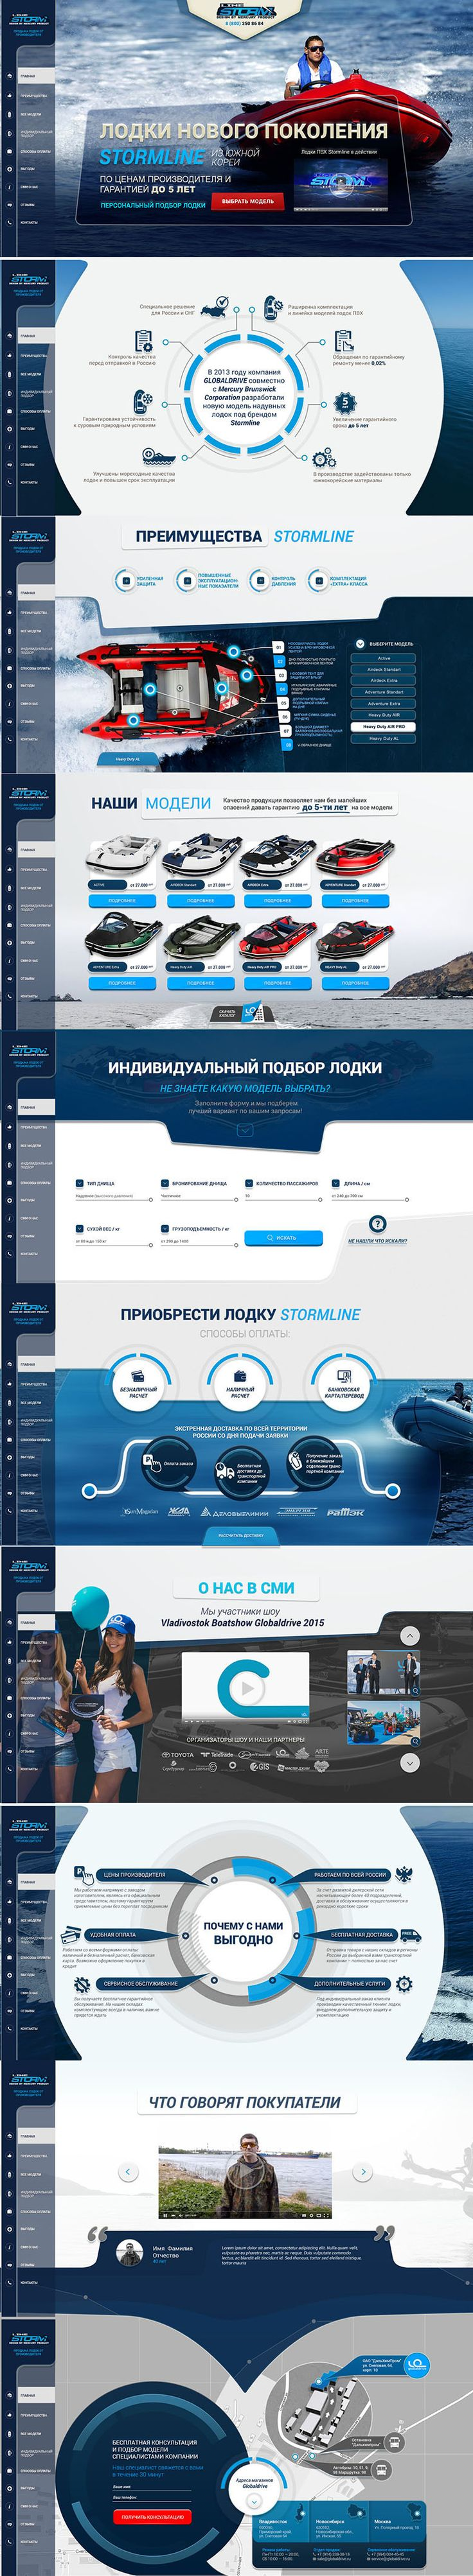 Landing Page STORM Line [Global Drive]  #landing, #page, #design, #web, #HTML5, #photoshop, #website, #boats, #speedboat, #extreme